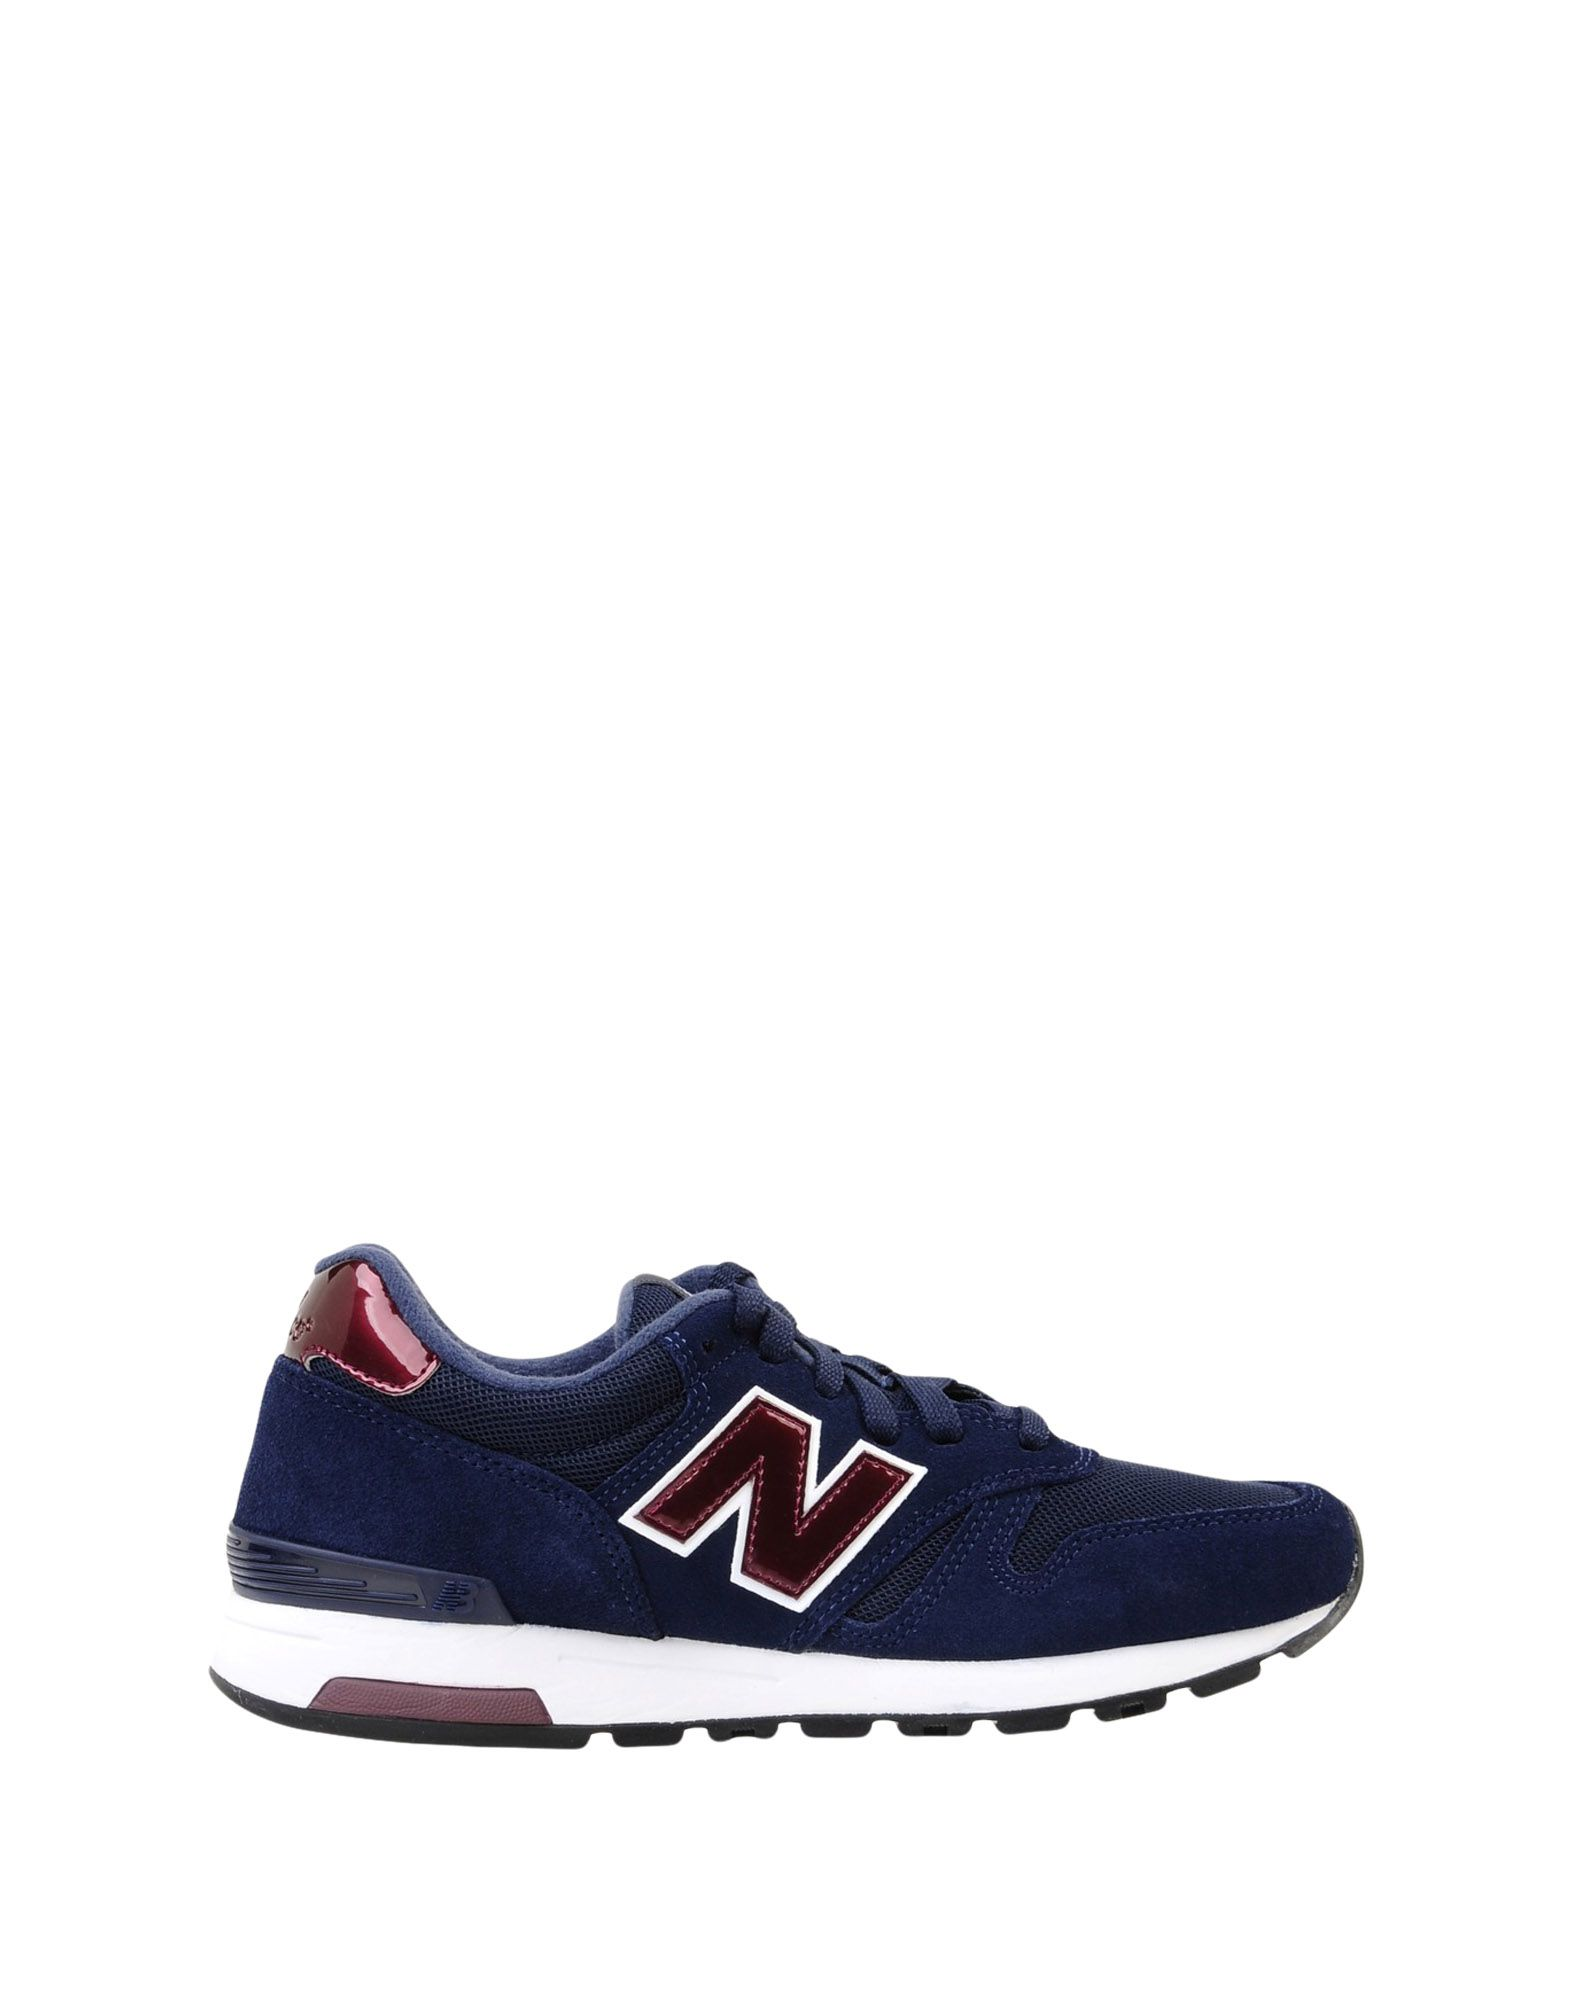 Sneakers New Balance 565 Suede/Mesh - Femme - Sneakers New Balance sur